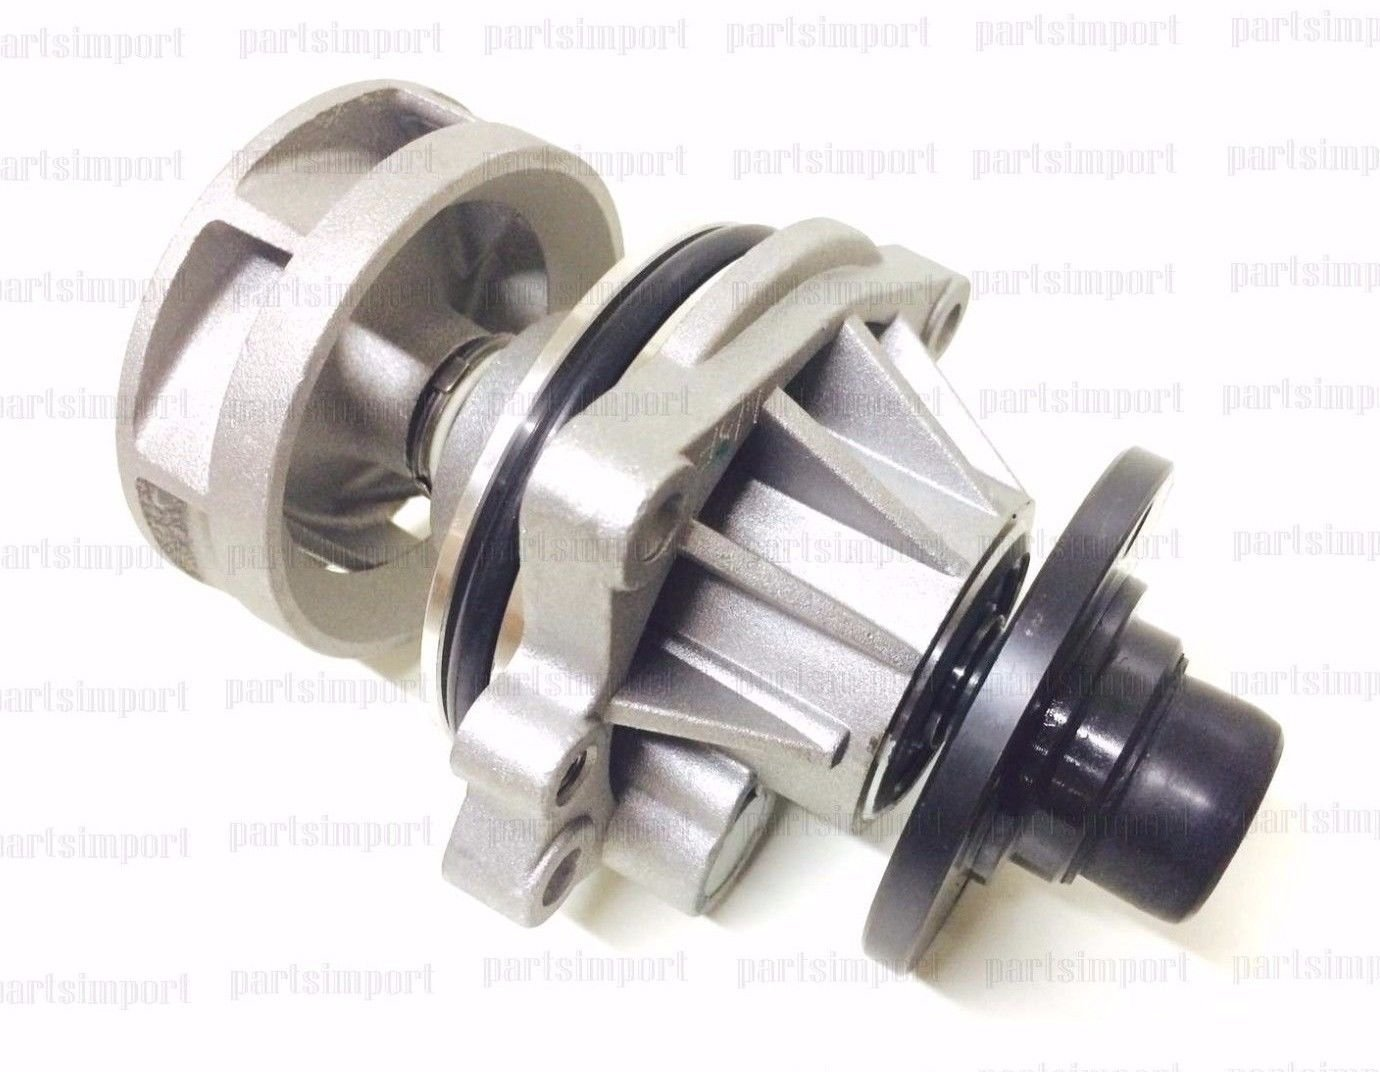 BMW Water Pump with O-Ring for E36 E46 E39 X 5 Z3 (6 Cyl. Engines M50 M52 M54) EURO PARTS